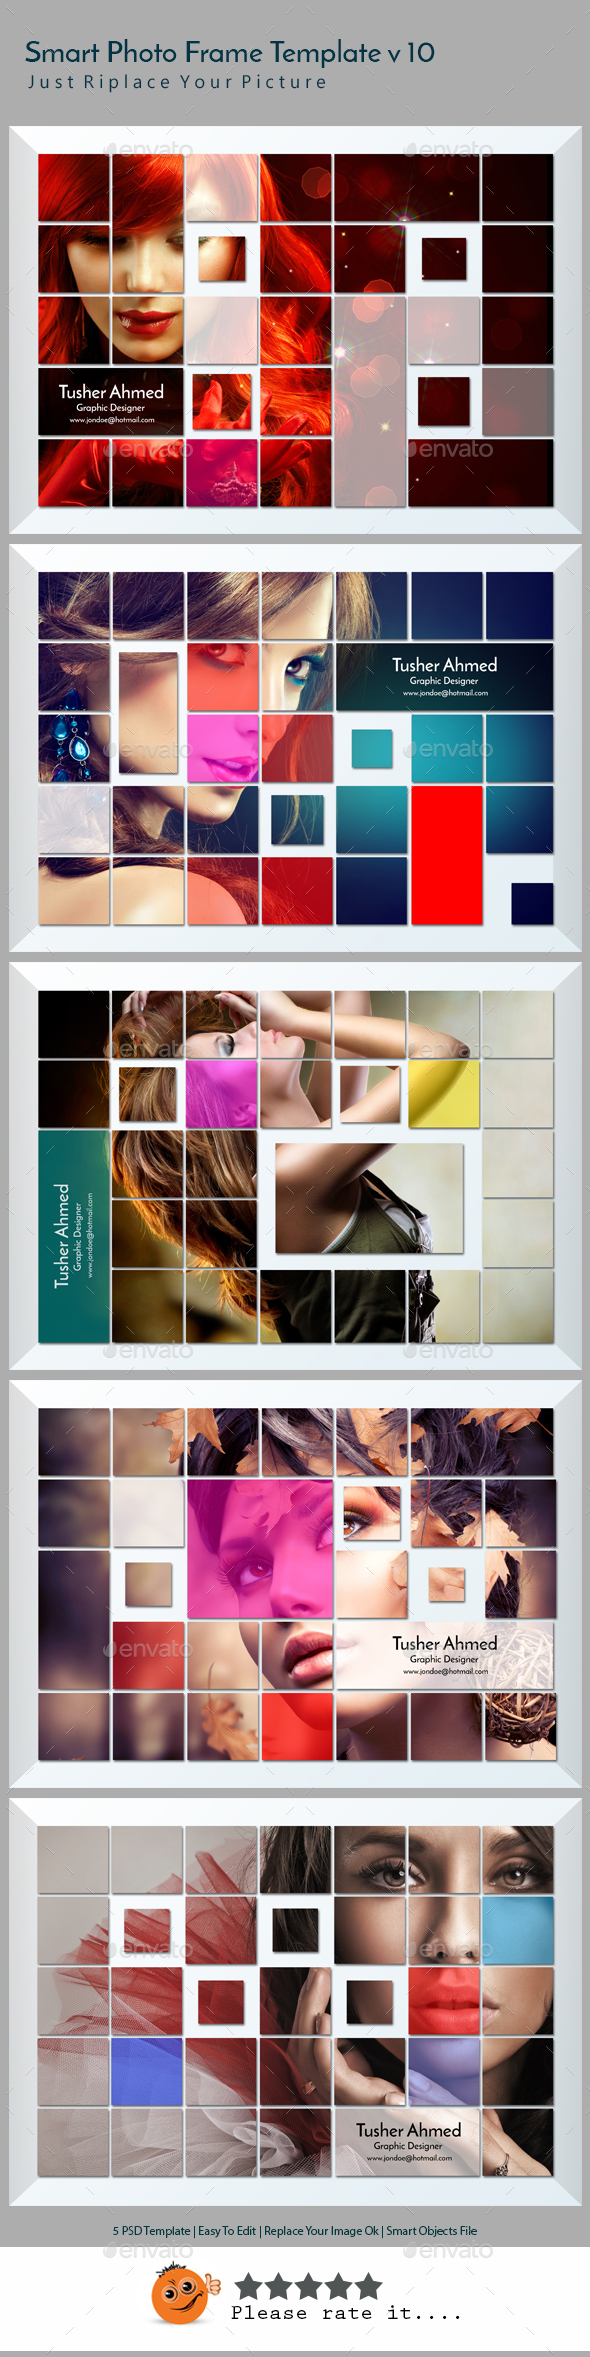 Smart Photo Frame Template v10 - Photo Templates Graphics